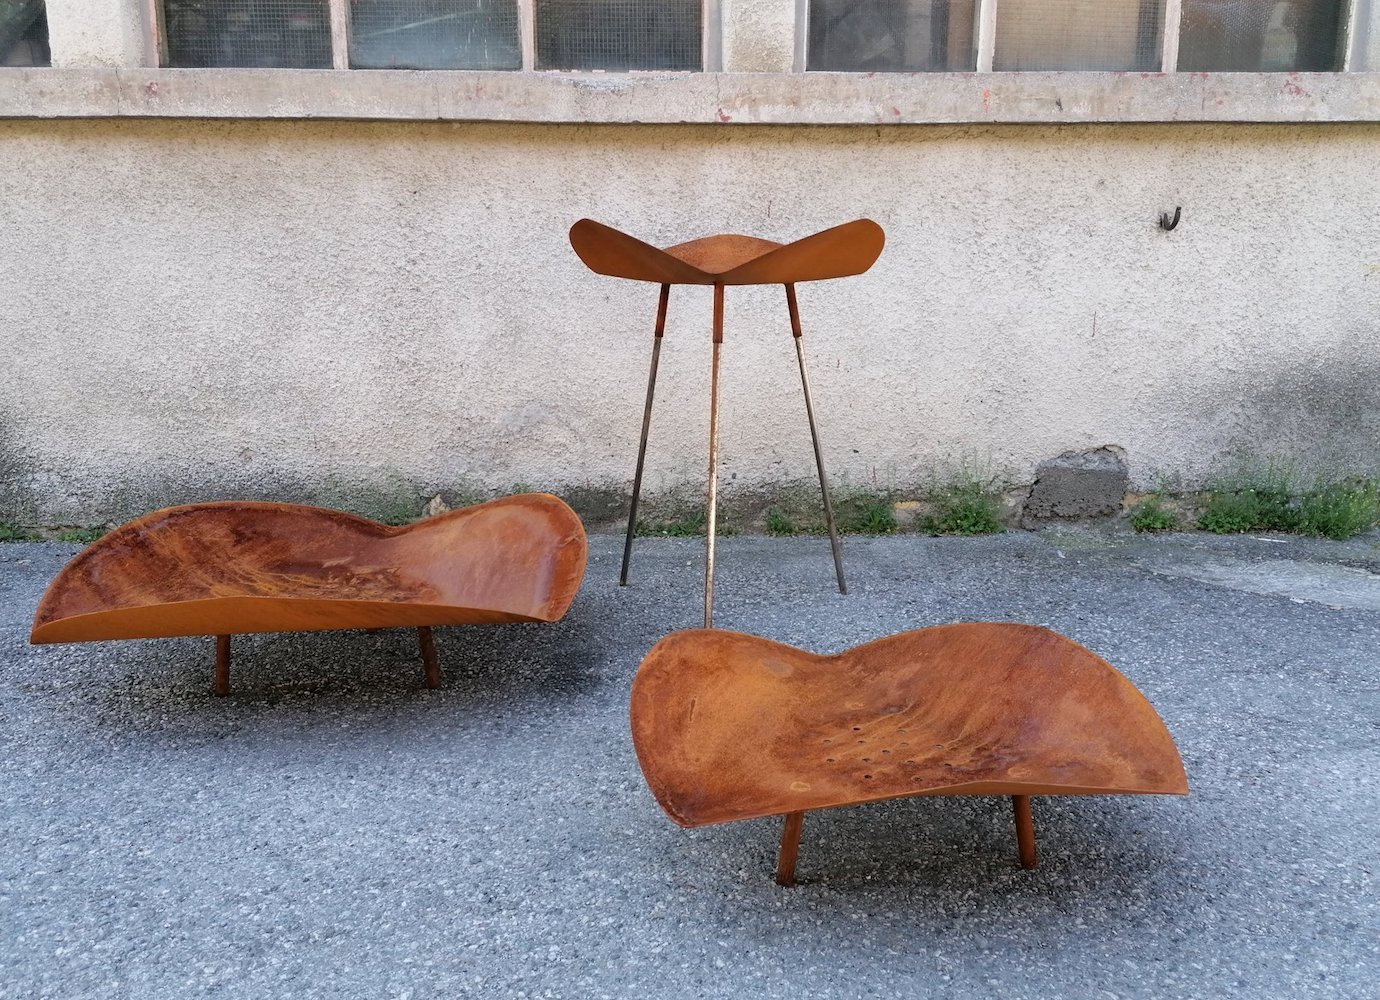 The Future of Living: Slovenia's designers find solutions for the post-consumption era